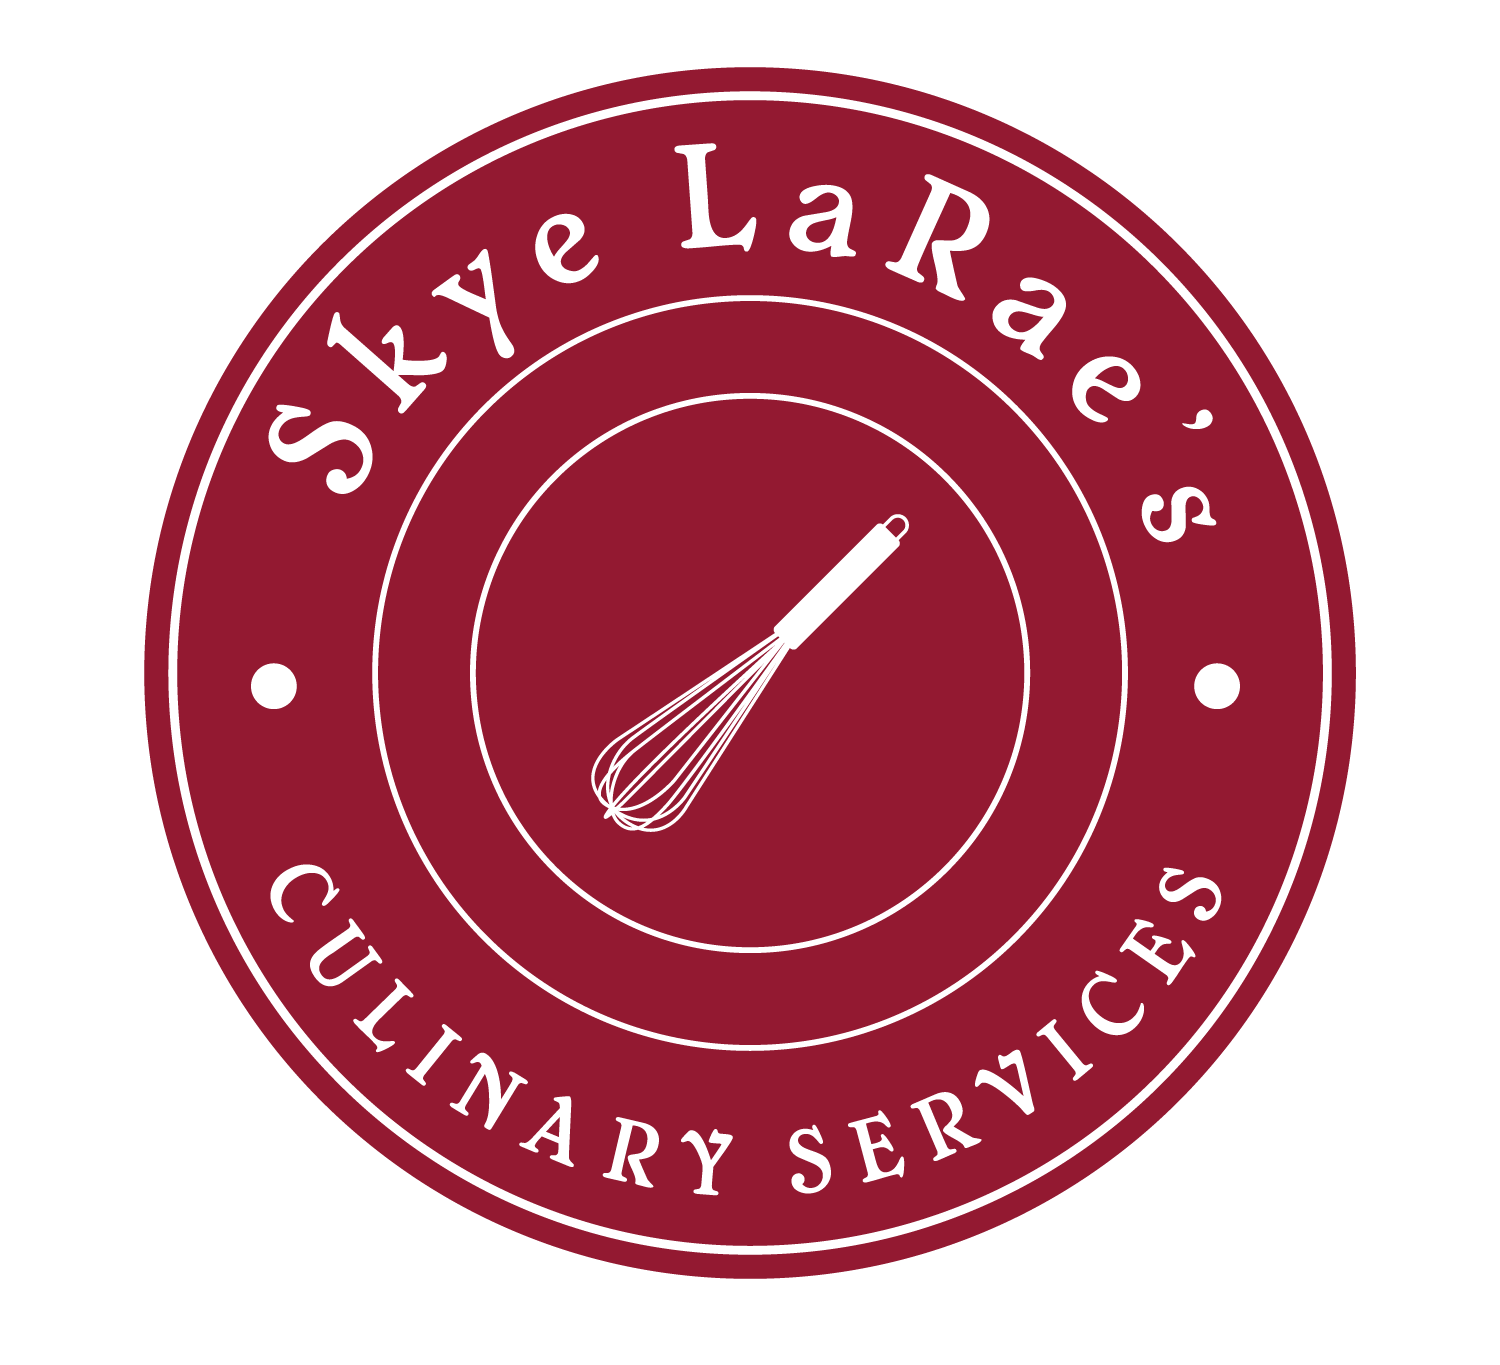 Skye LaRae's Culinary Services